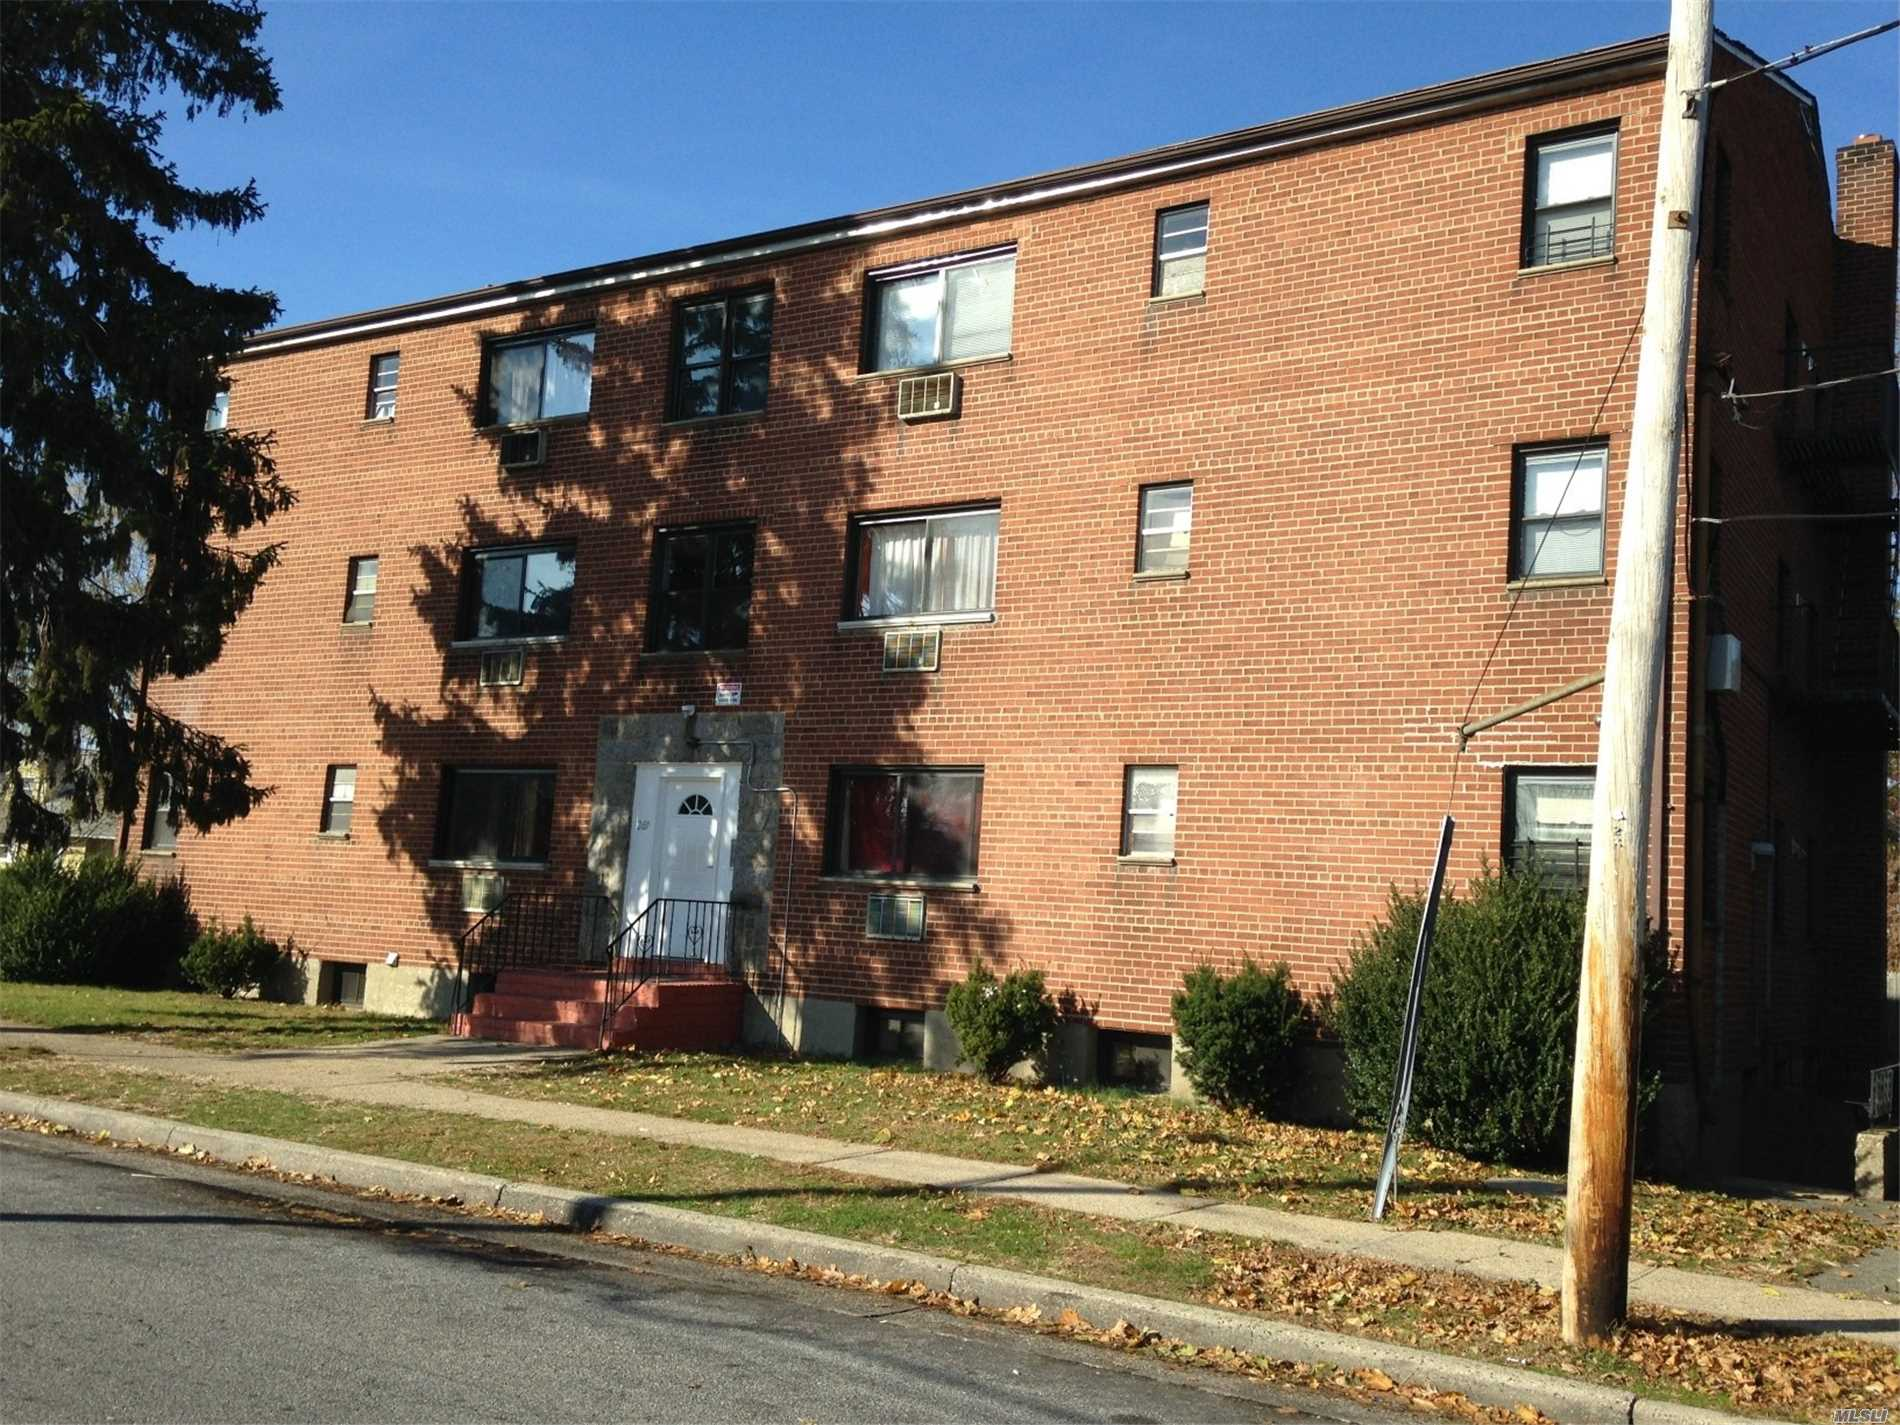 Two Bedrooms Apartment On The First Floor Of Building, Clean, Family Friendly, Quiet. Close To Shops, Parks And Transportation.